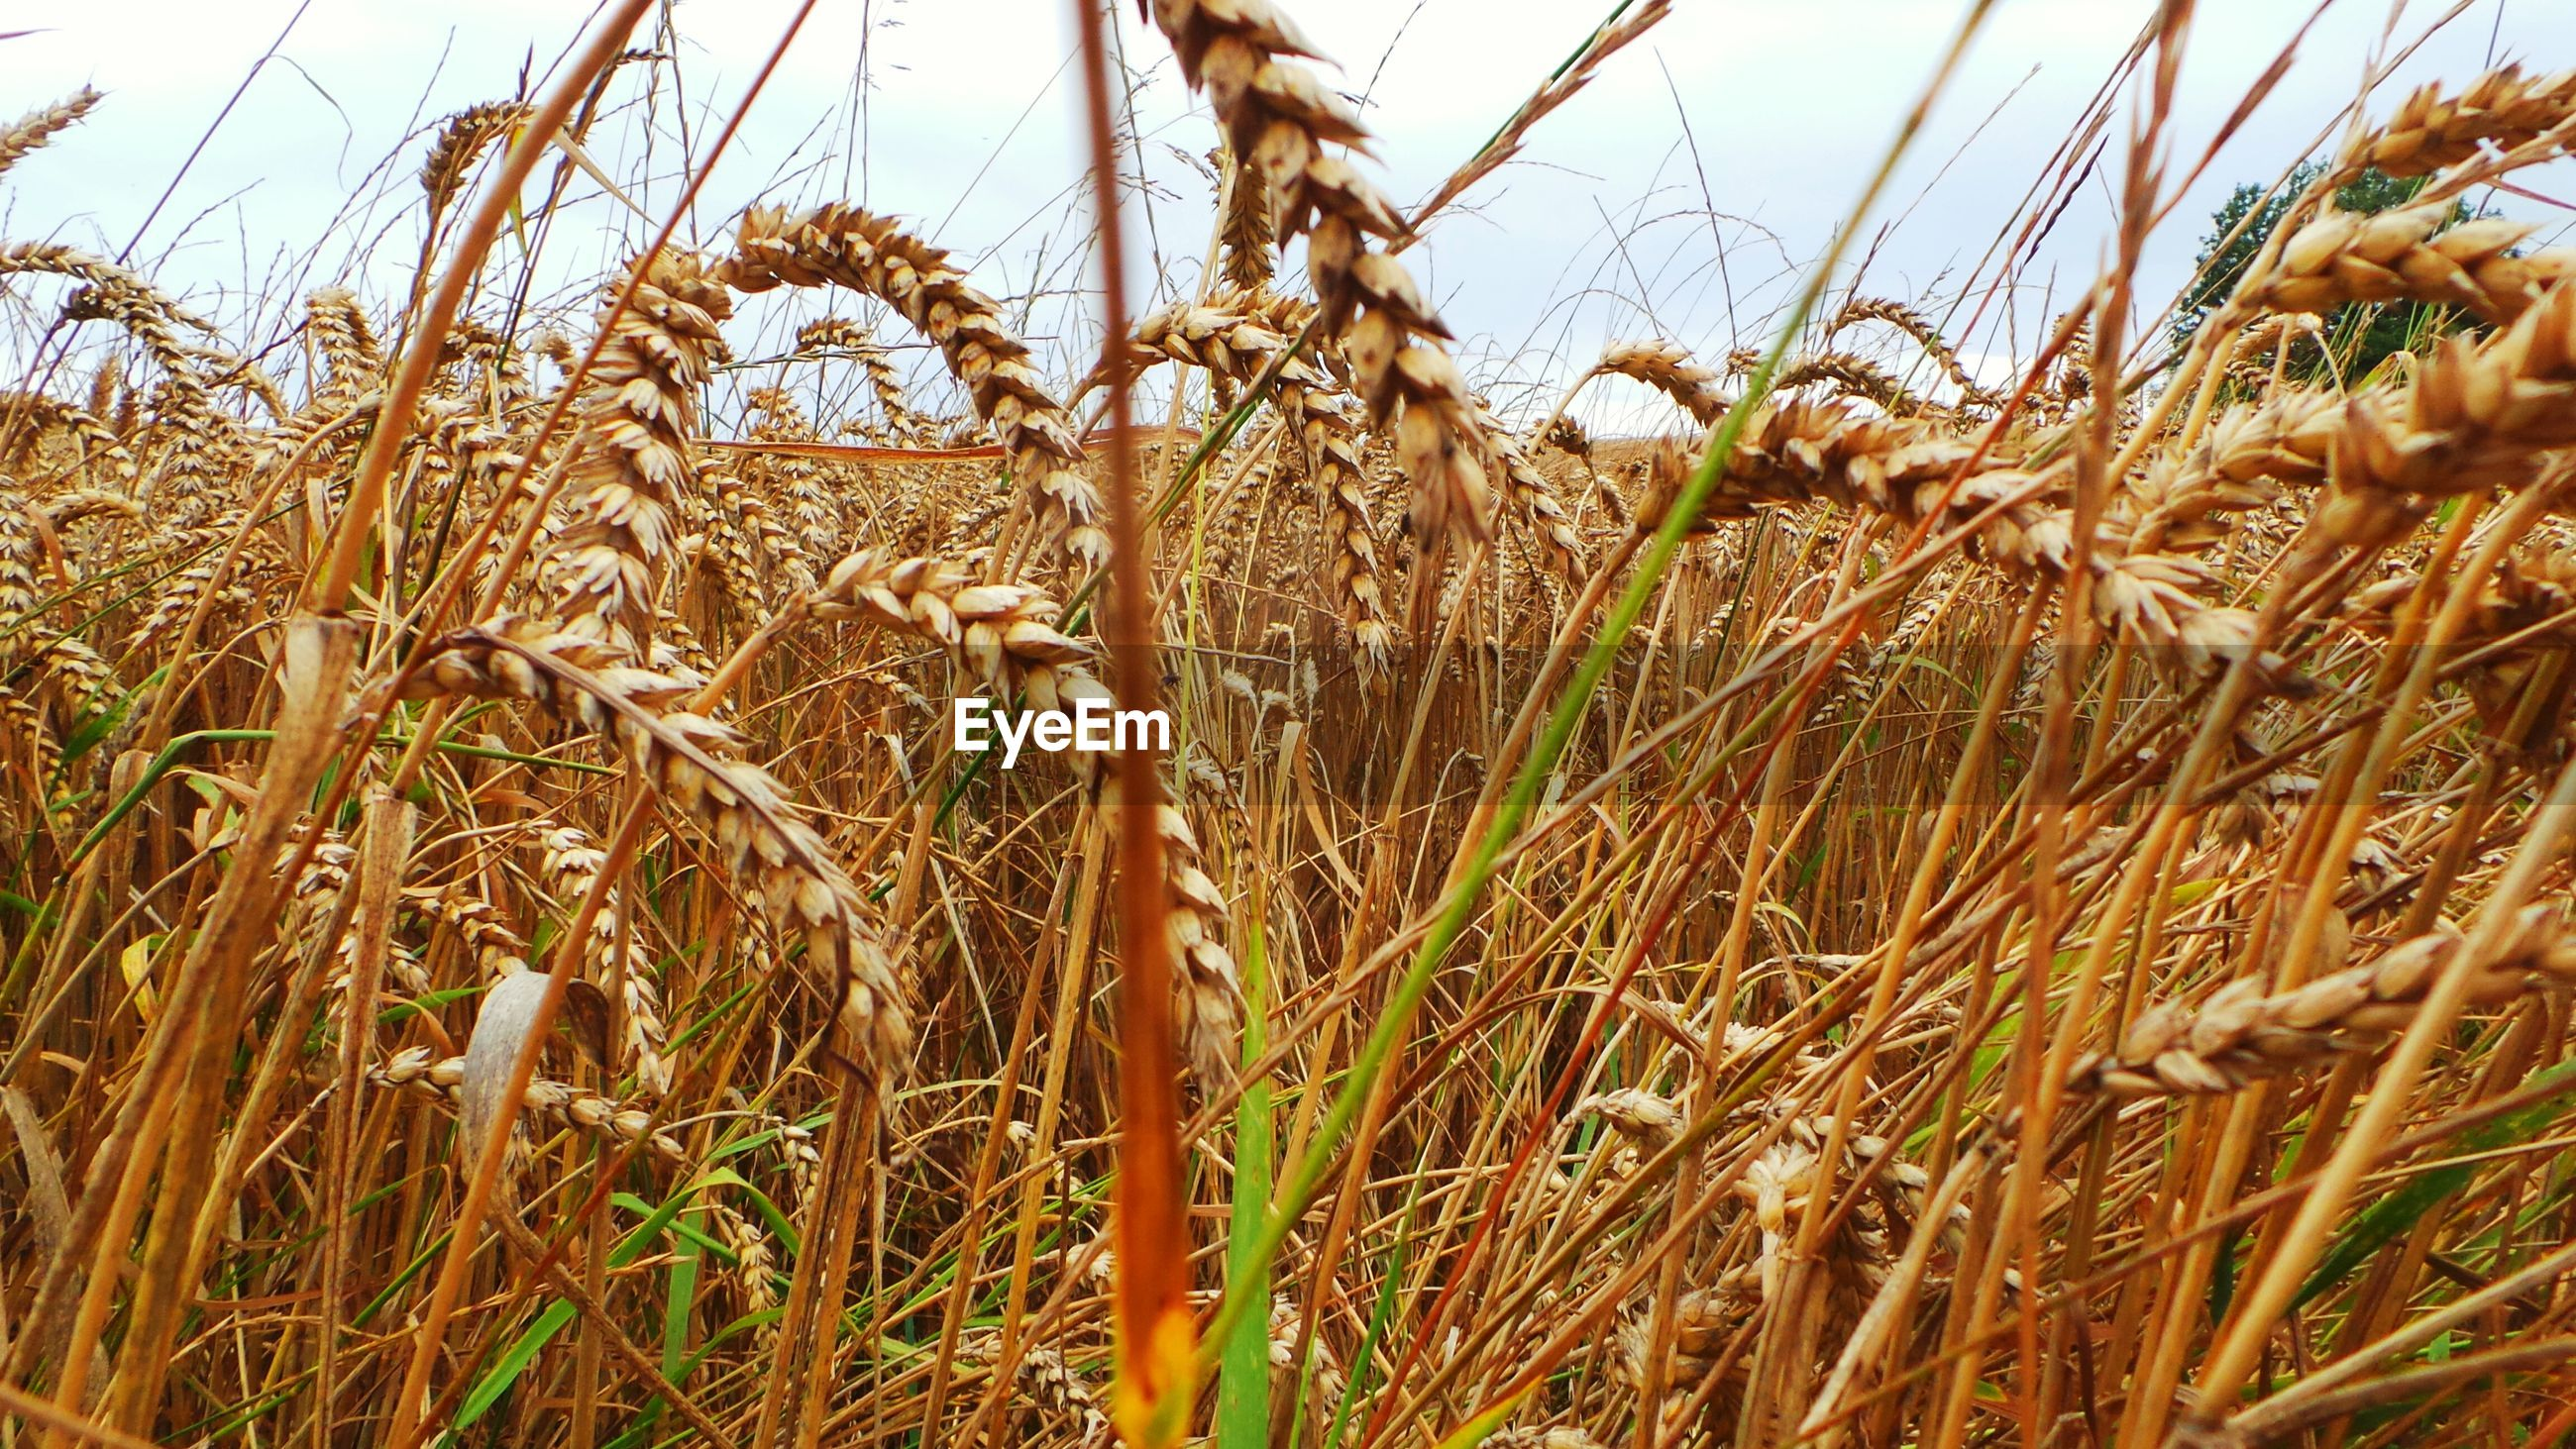 Close-up of wheat crops in field